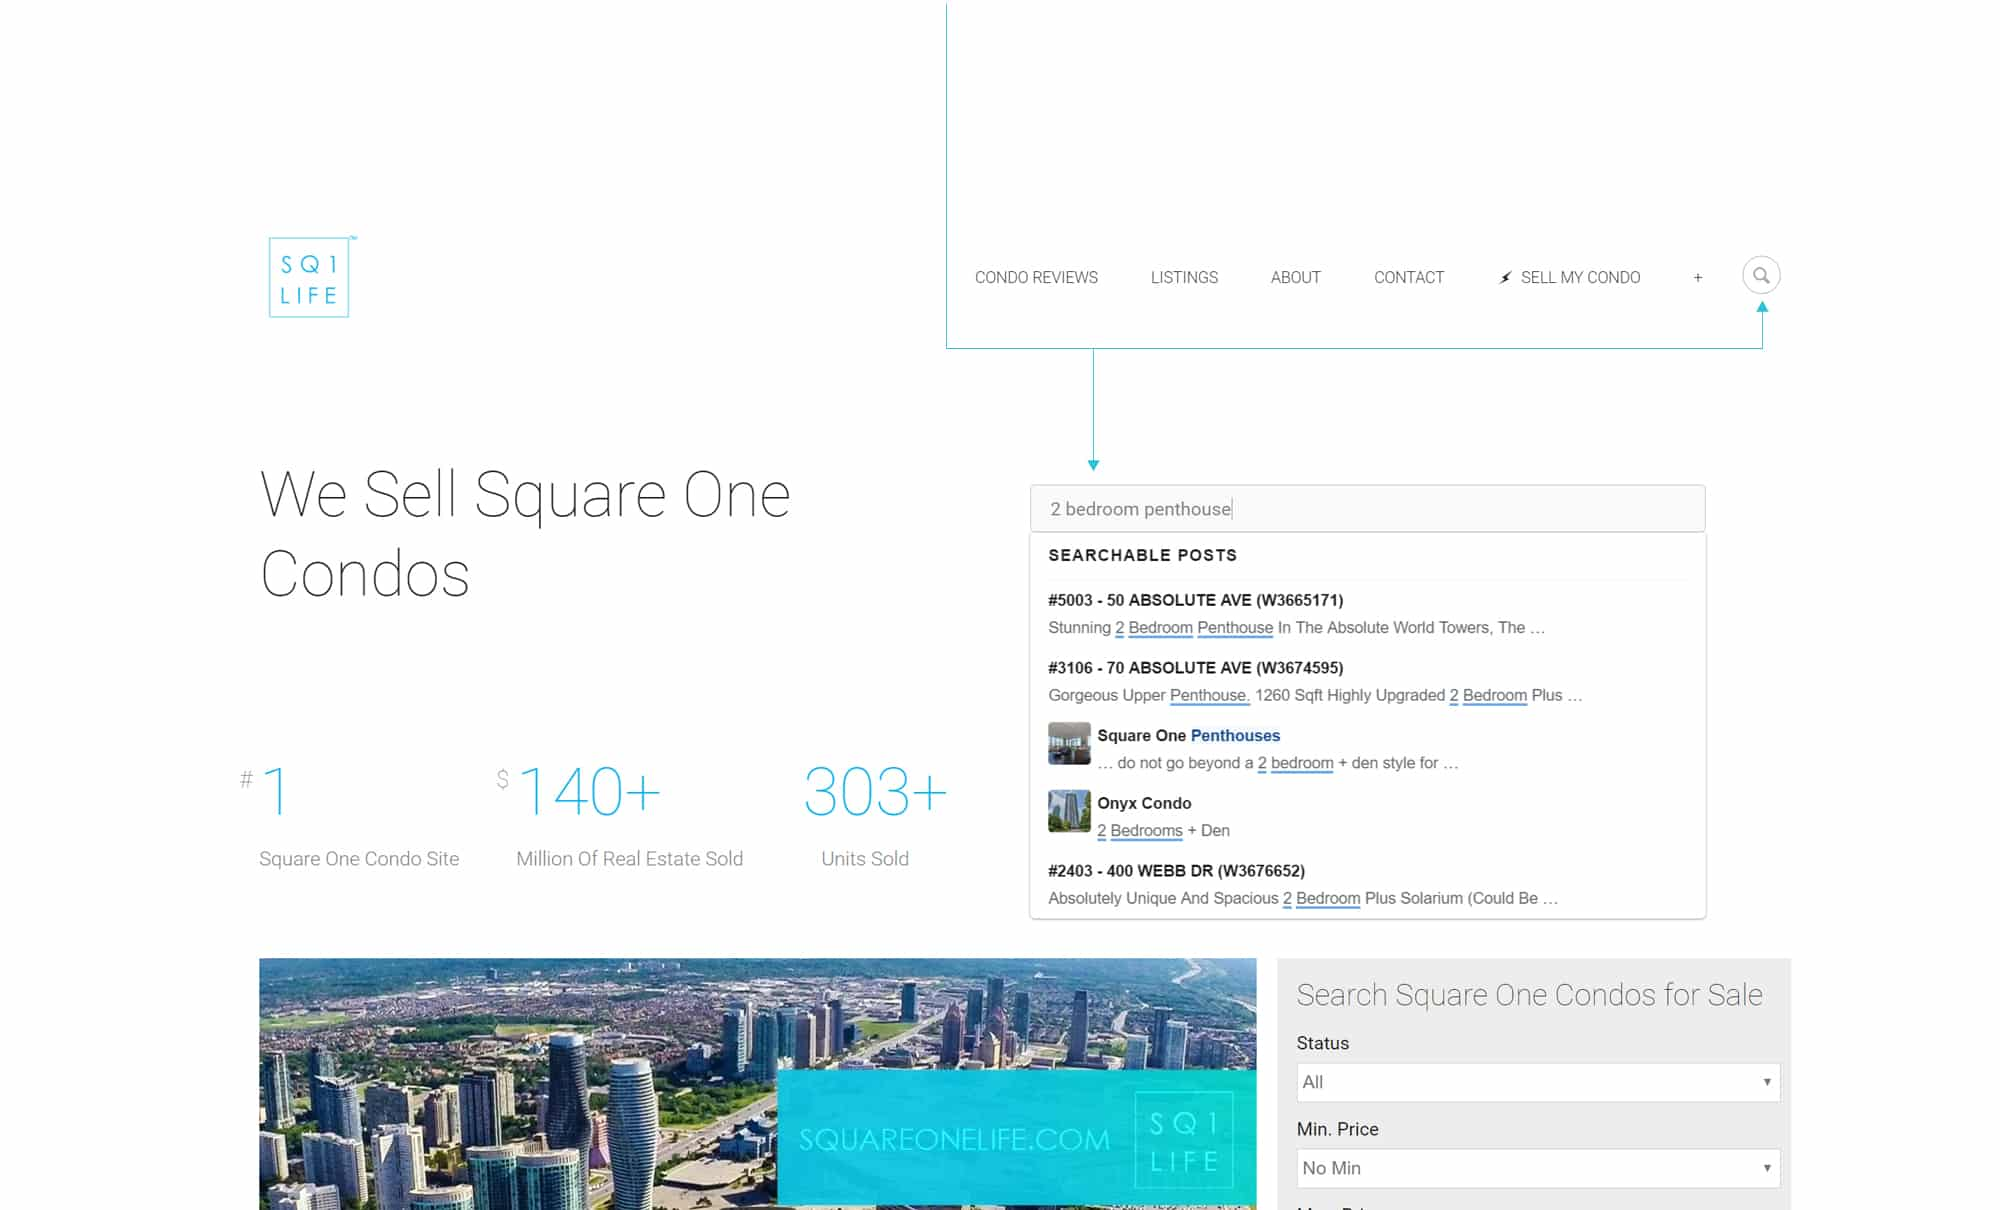 intelligent search New Intelligent Search Feature square one condos mississauga condos squareonelife